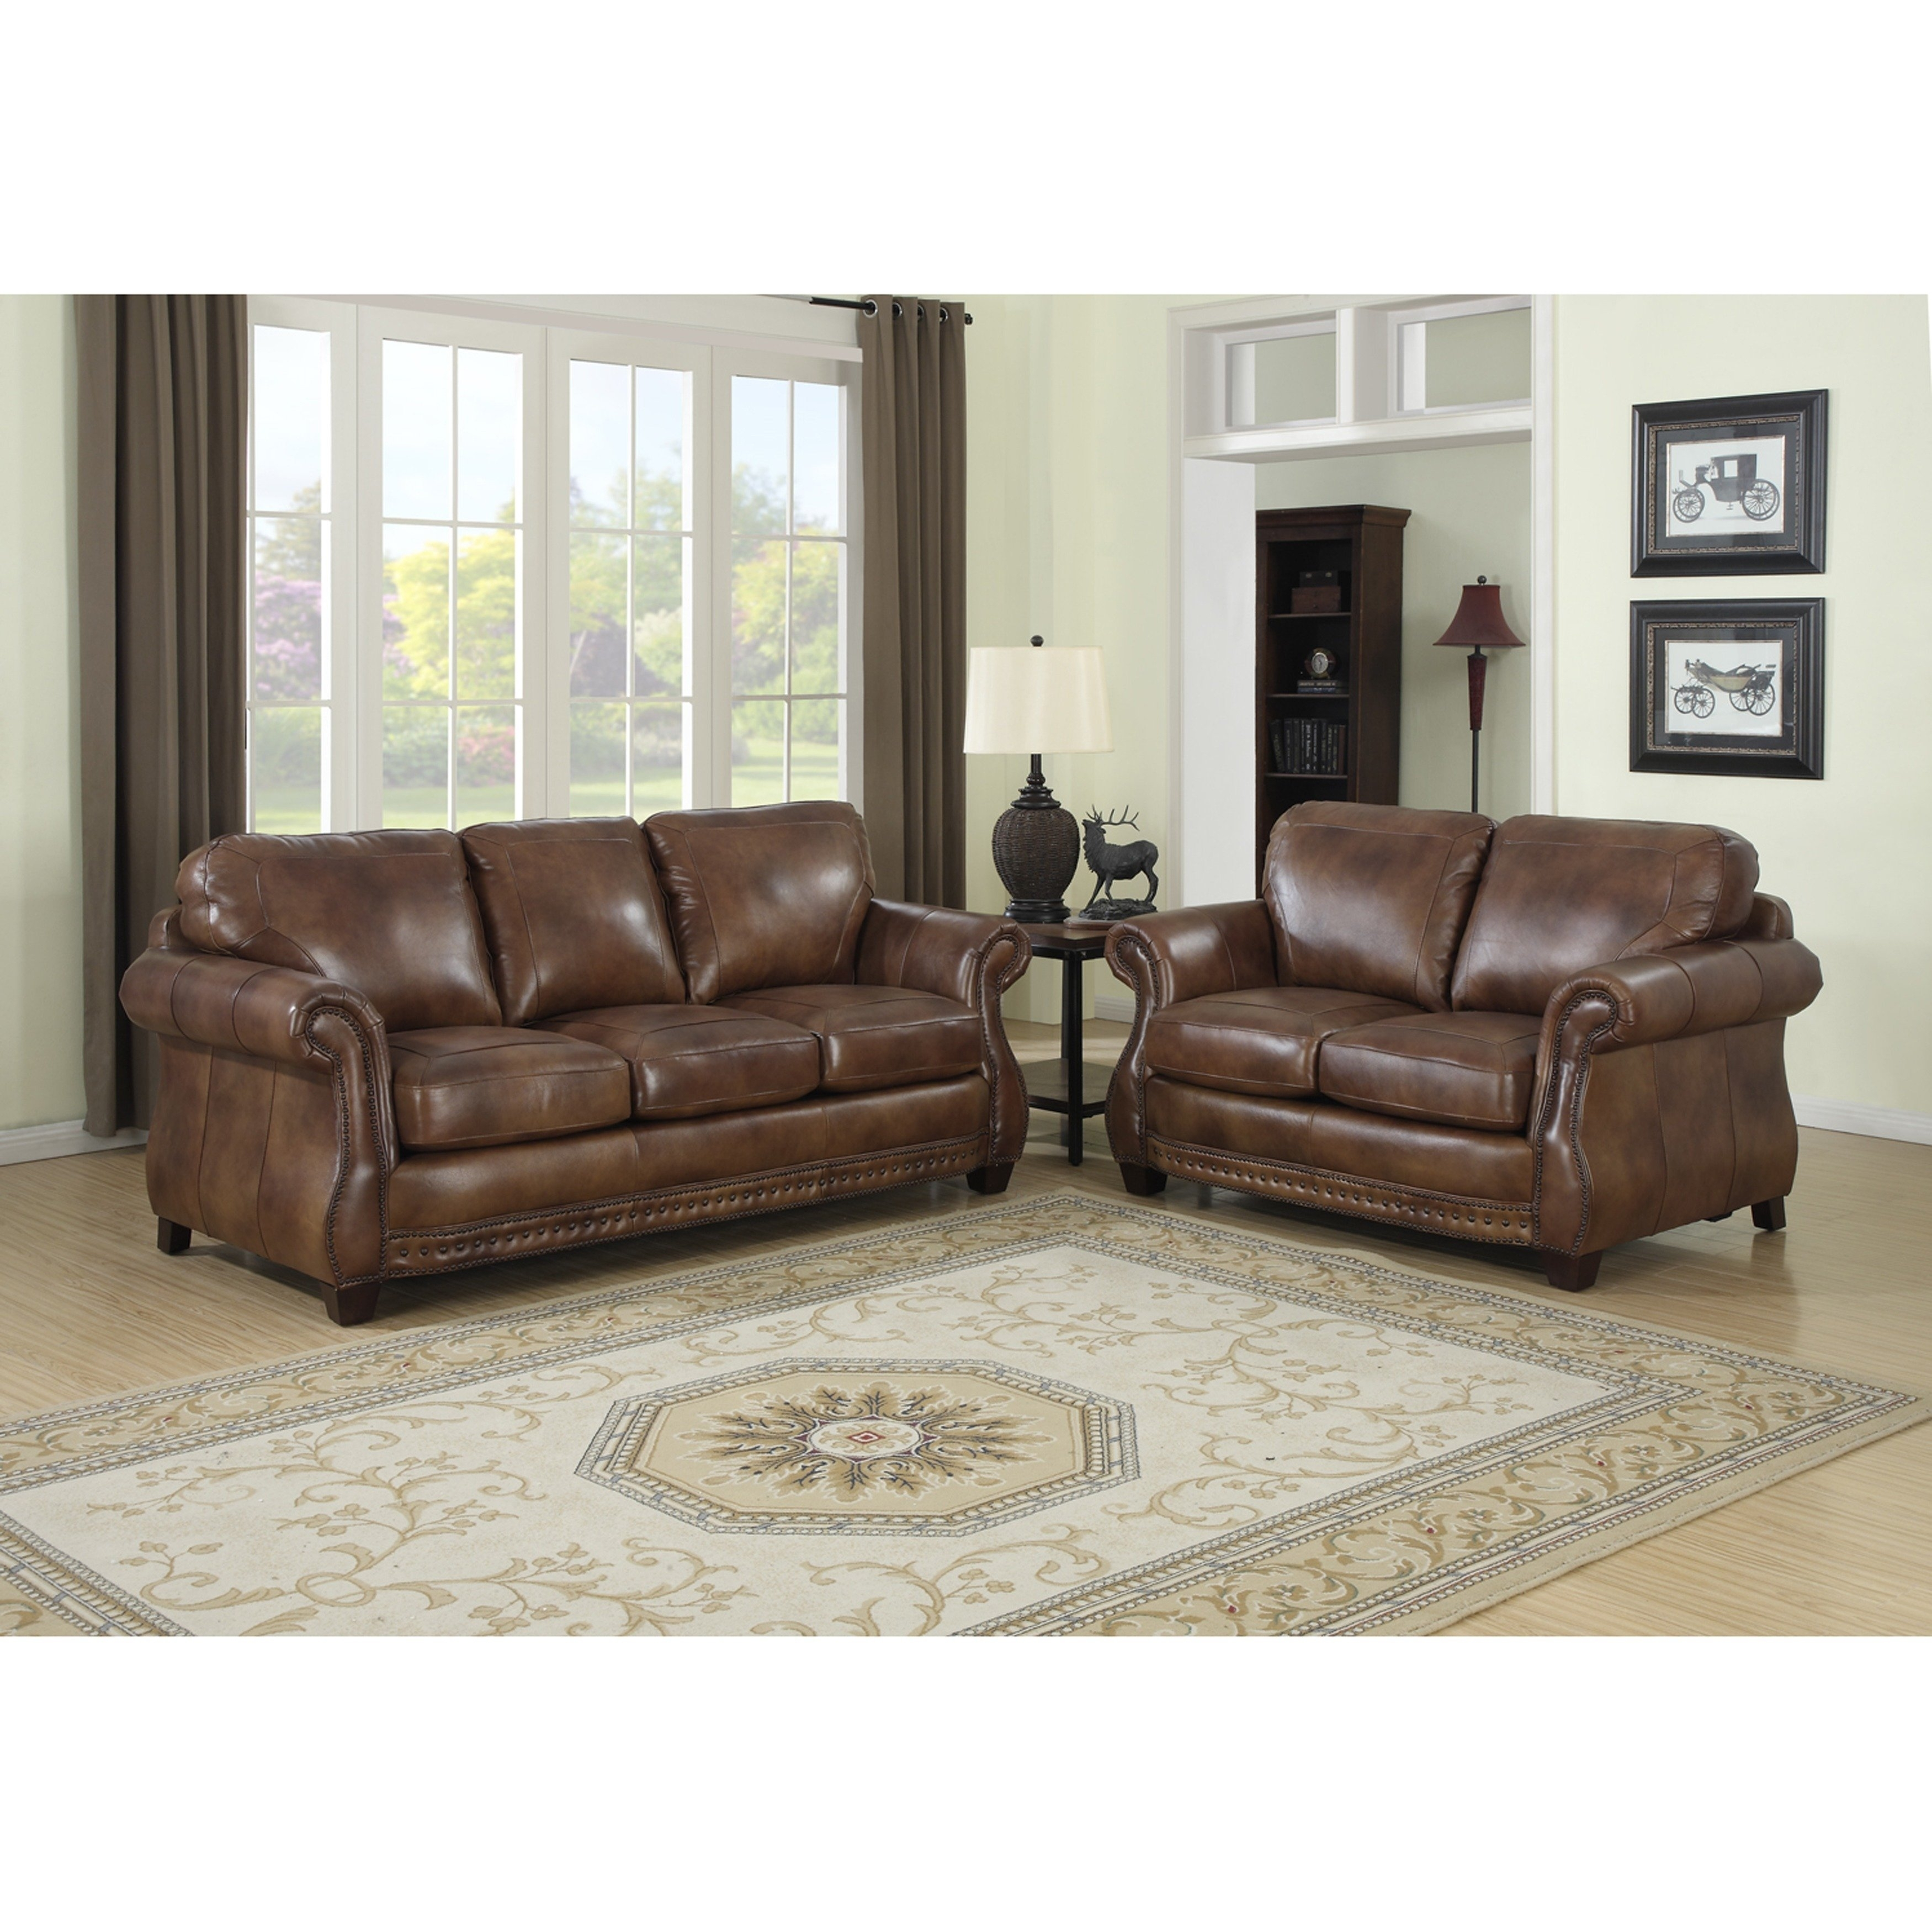 Cognac Sofa | Baci Living Room within Tenny Cognac 2 Piece Left Facing Chaise Sectionals With 2 Headrest (Image 11 of 30)